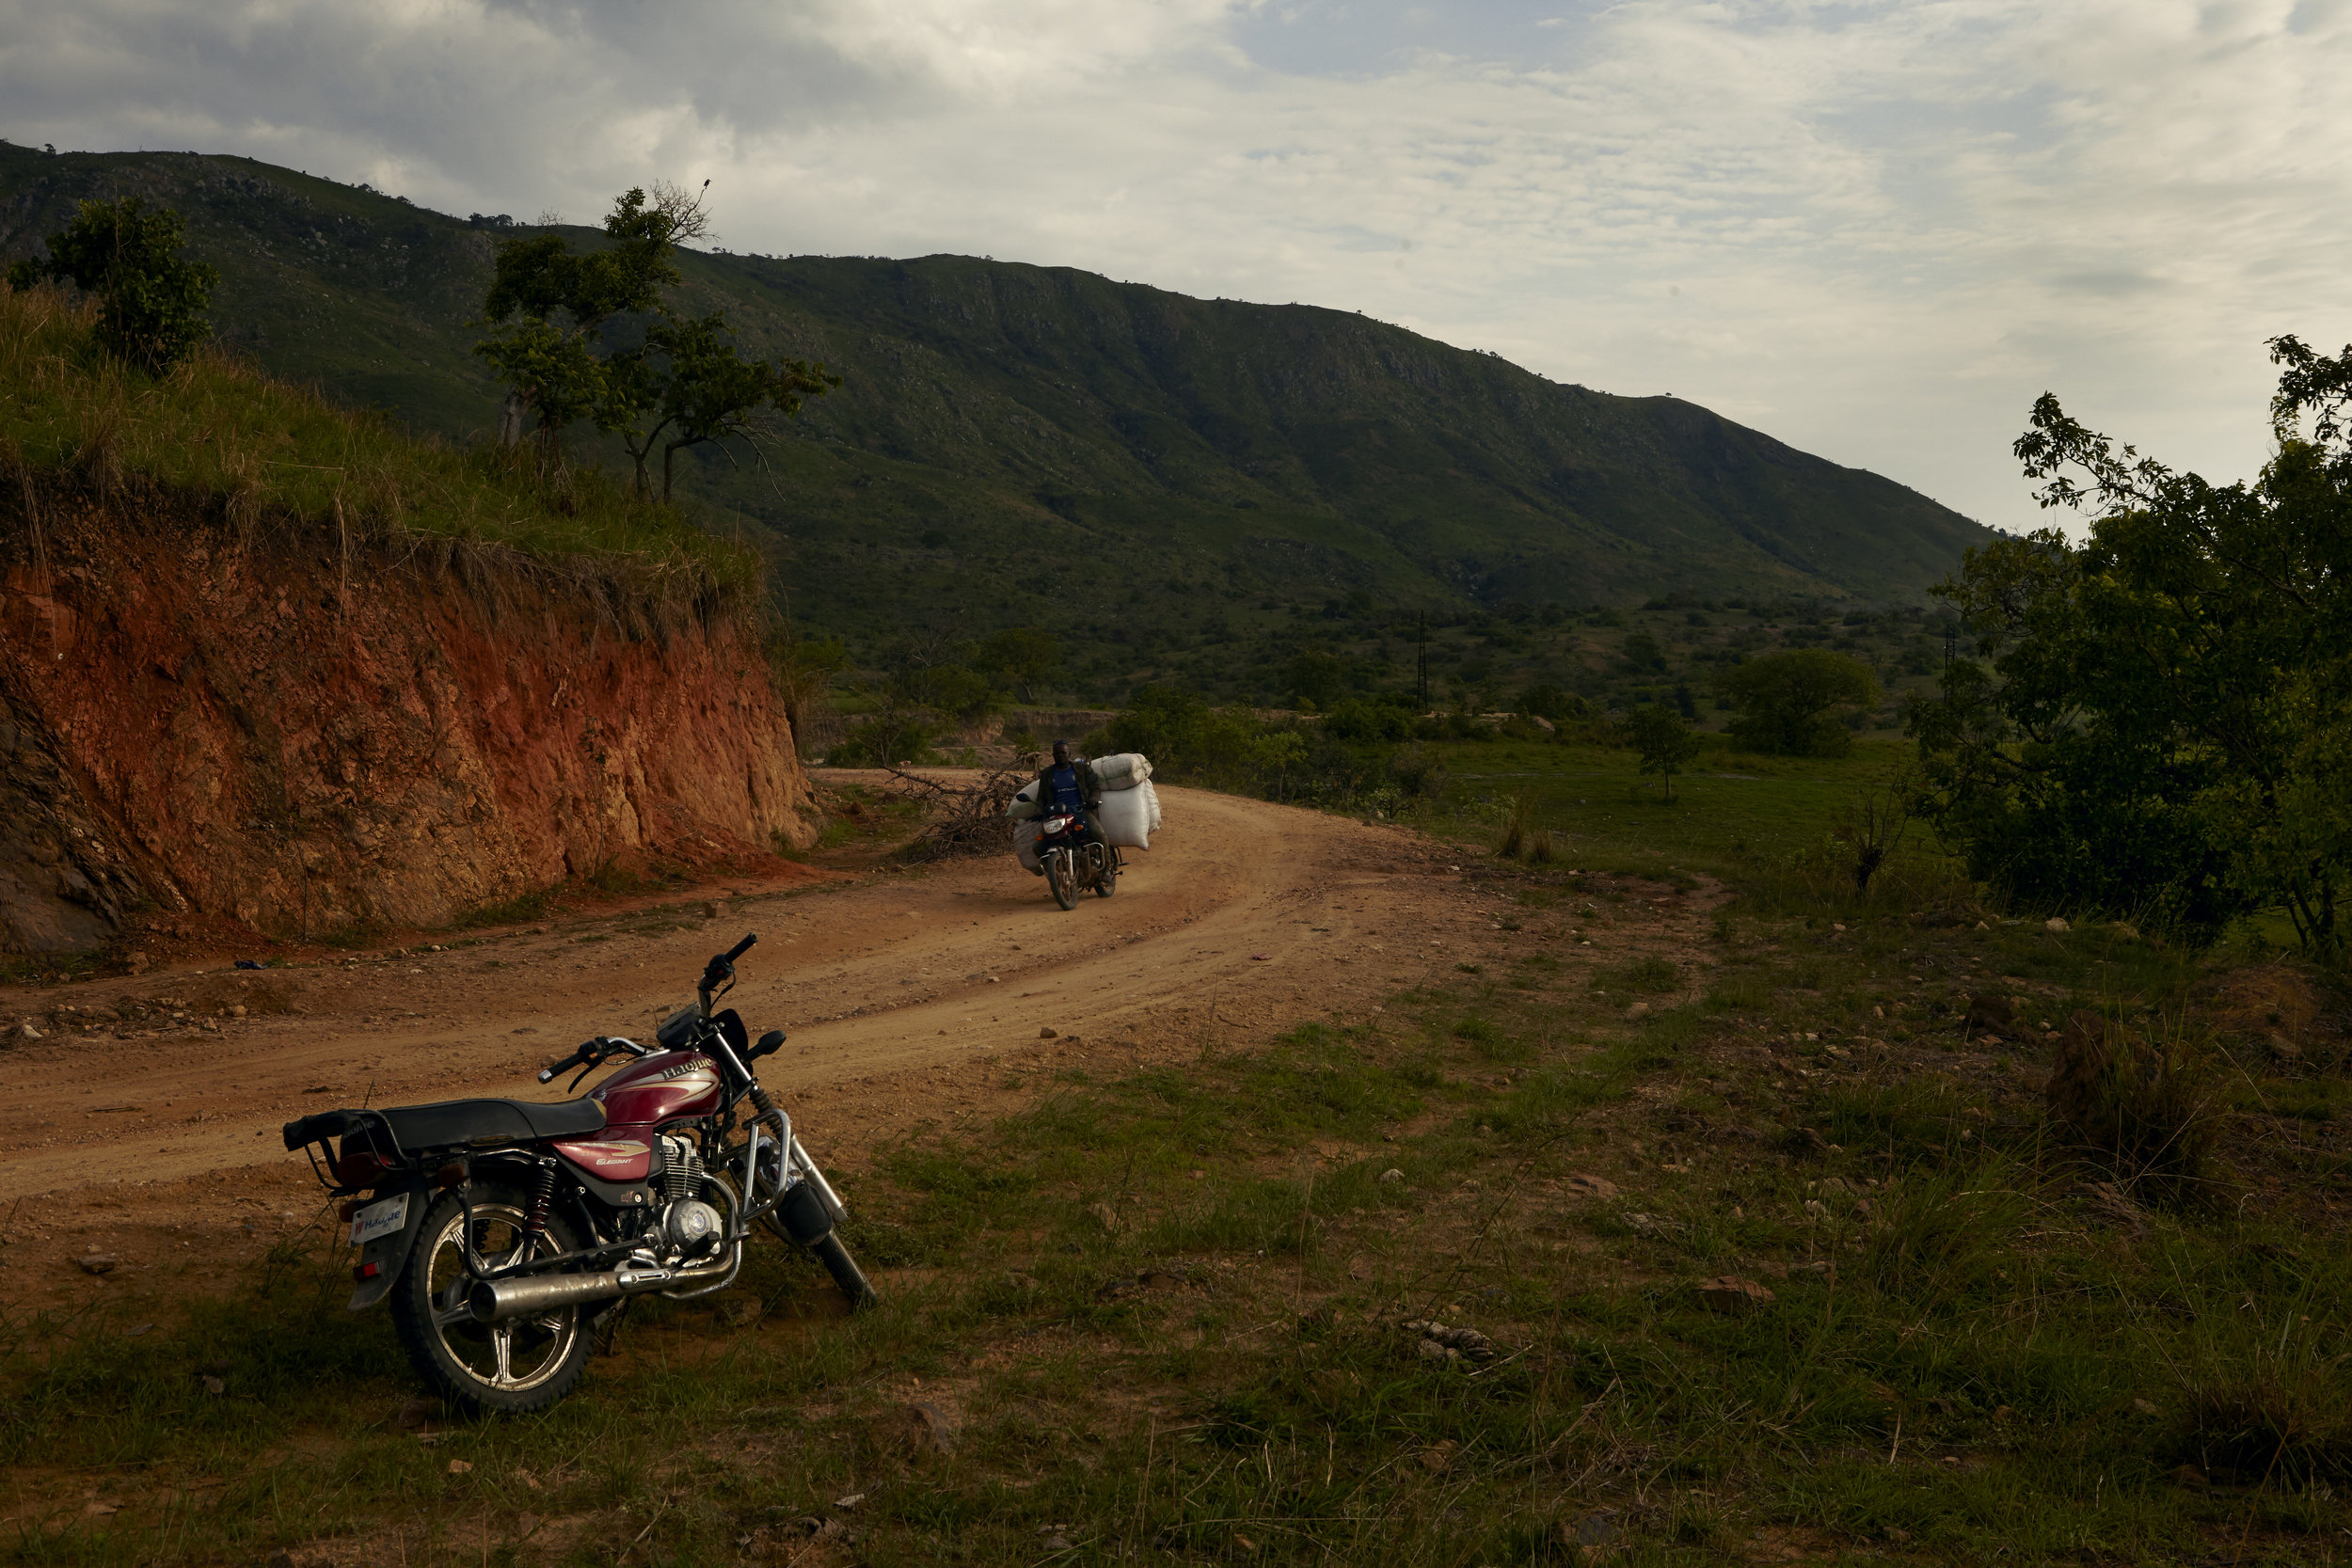 The bike that carried myself and my driver, Rigo, through the Ituri countryside from Bunia to Kasenyi on Lake Albert.